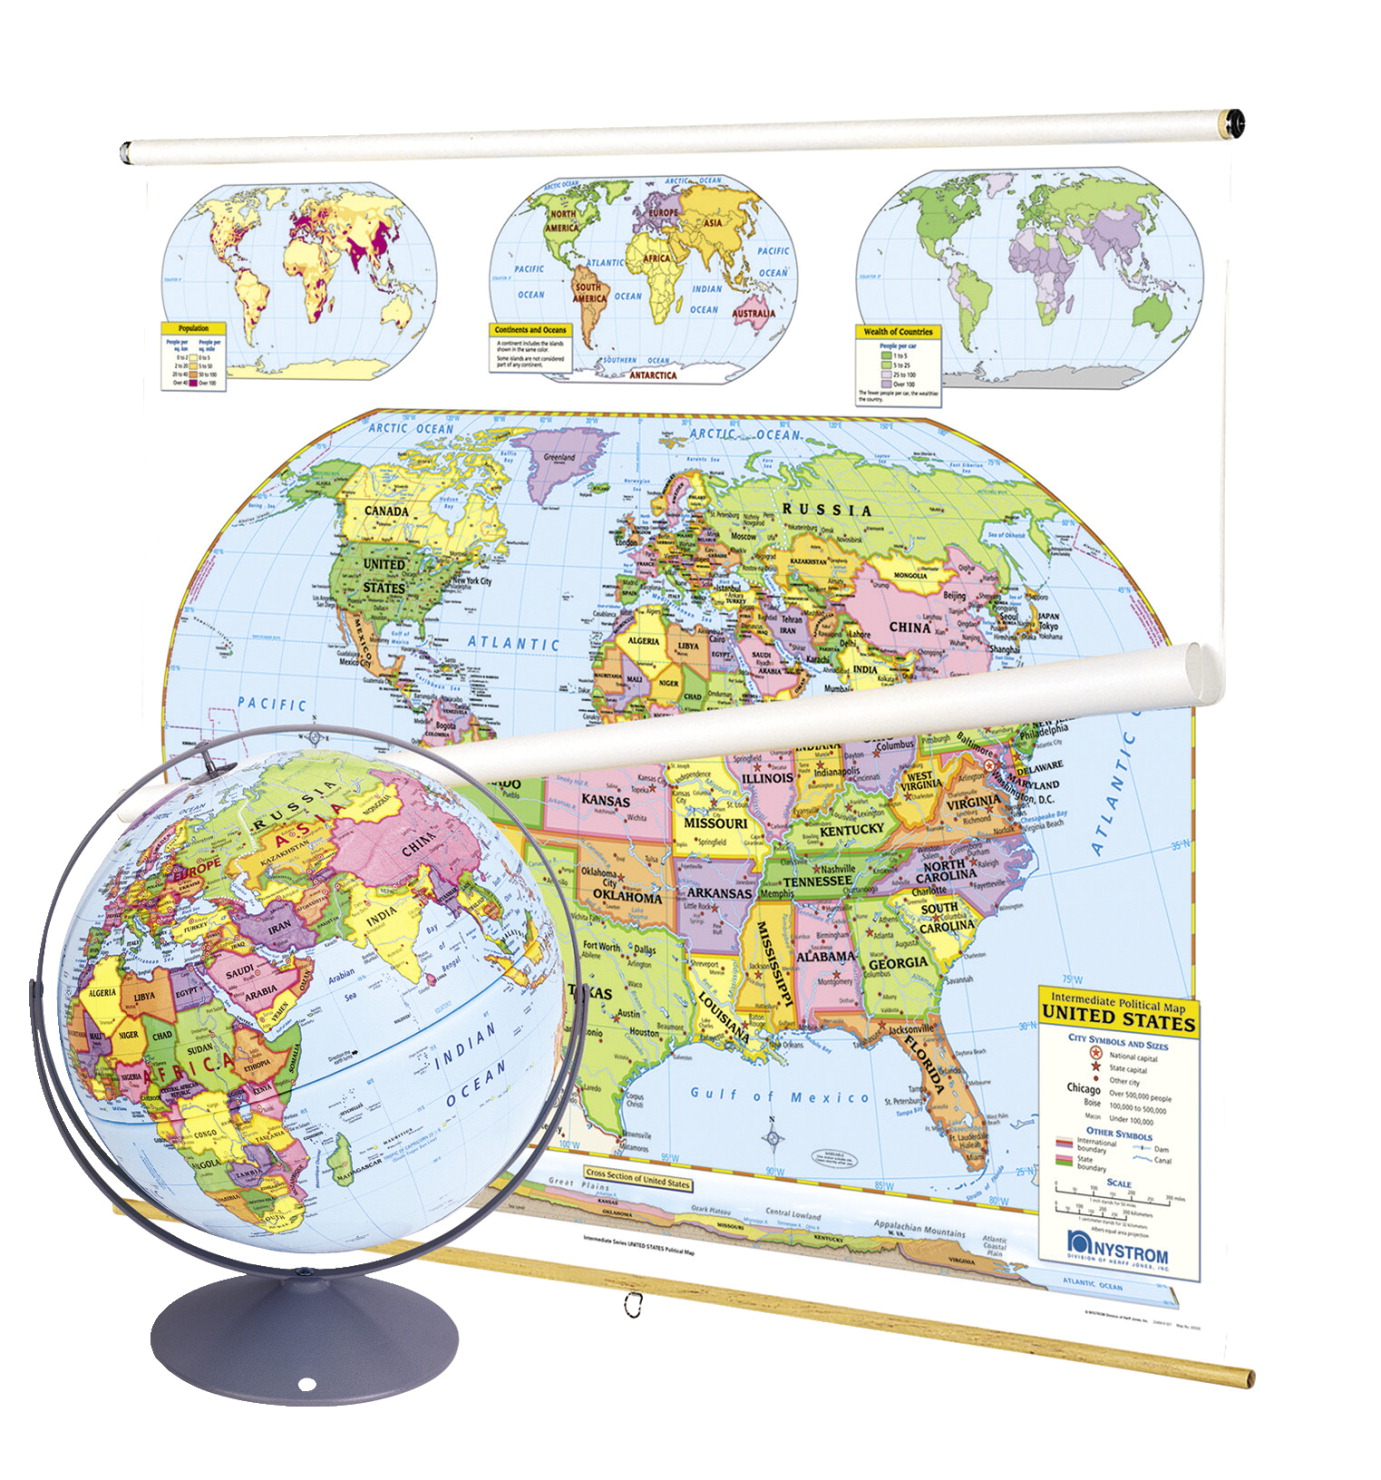 Map Of Canada For Elementary Students.Nystrom Political U S And World Combo Map Classroom Pack With Globe